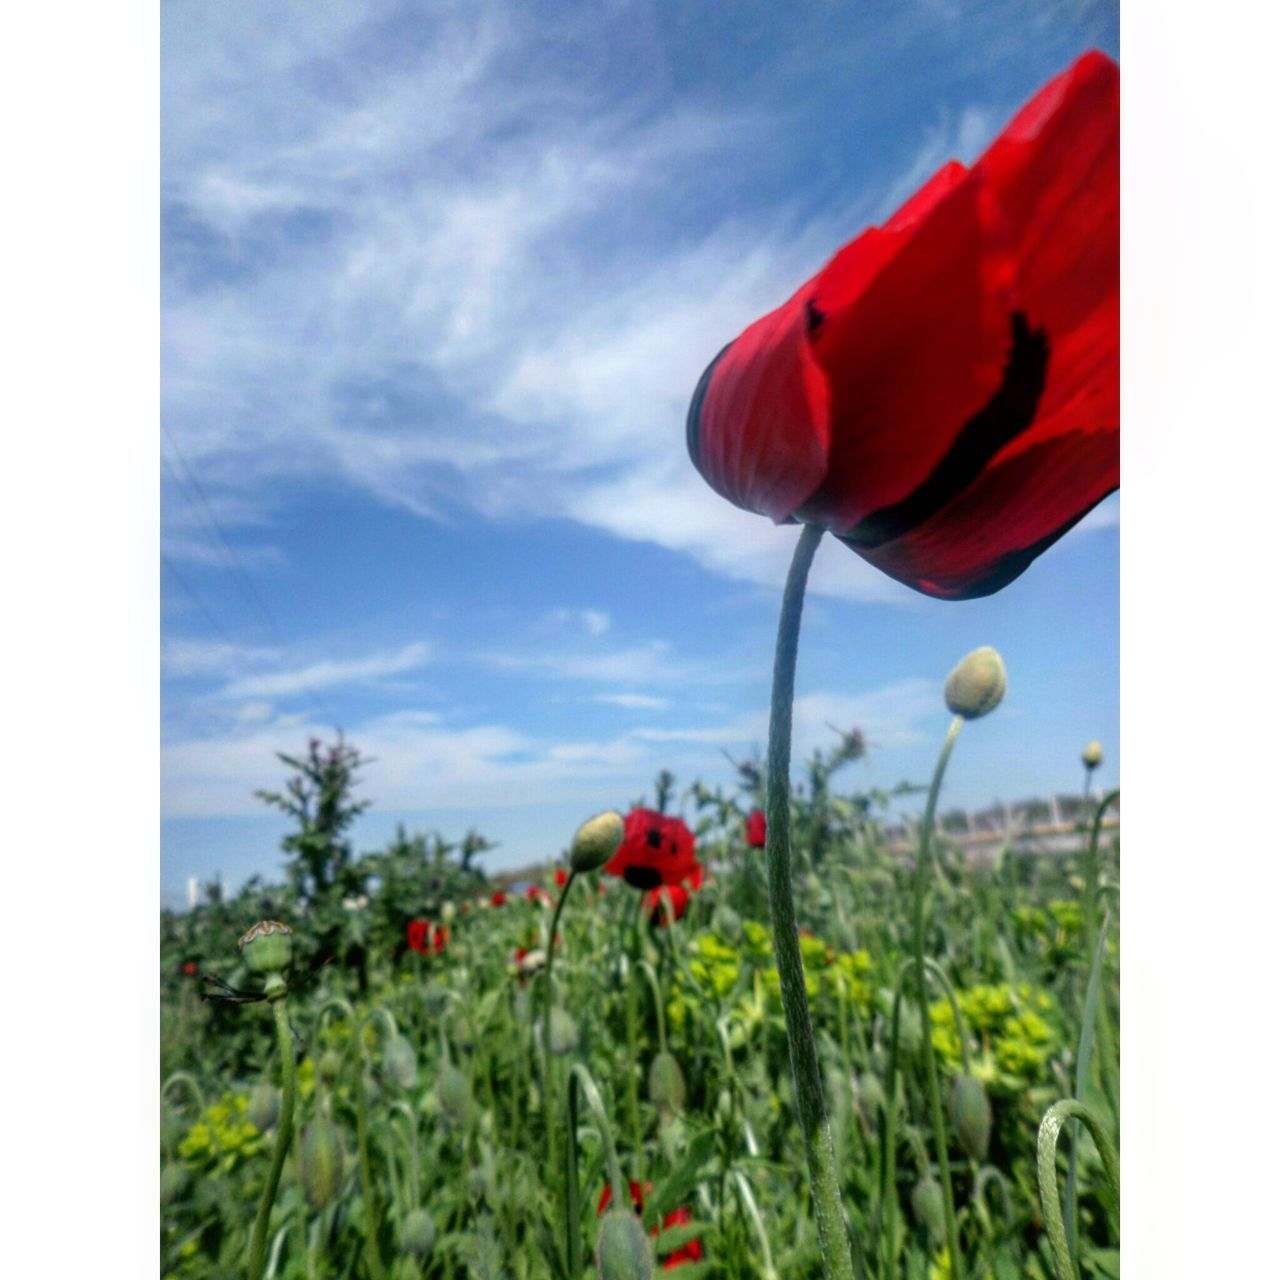 flower, red, growth, petal, beauty in nature, plant, nature, fragility, freshness, sky, poppy, no people, day, blooming, outdoors, flower head, close-up, cloud - sky, tree